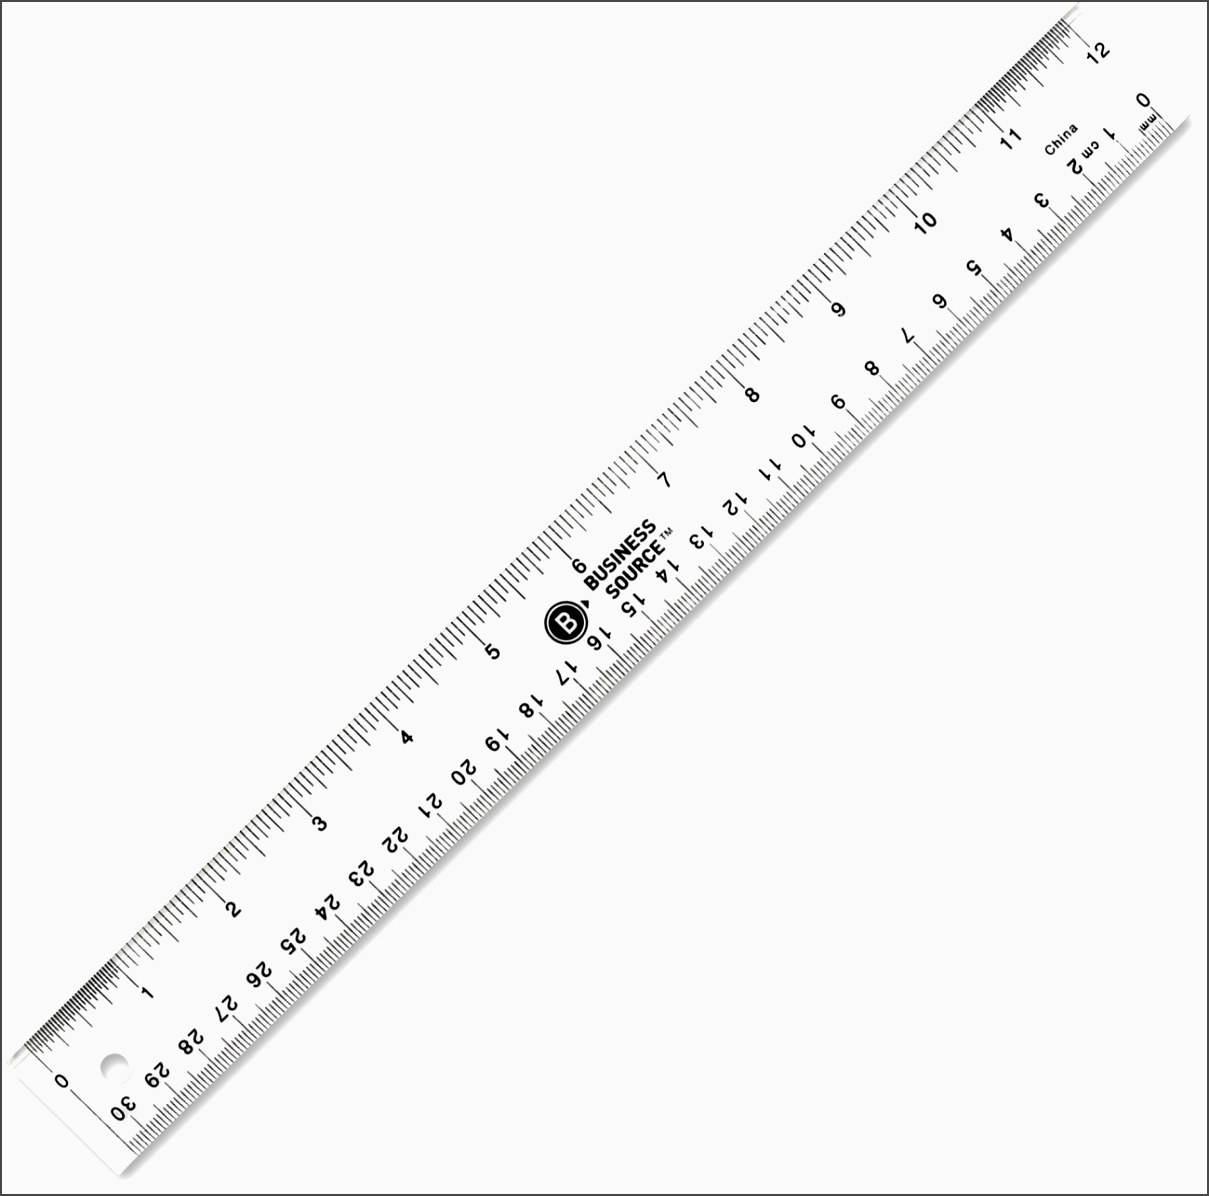 69 Free Printable Rulers   Kittybabylove